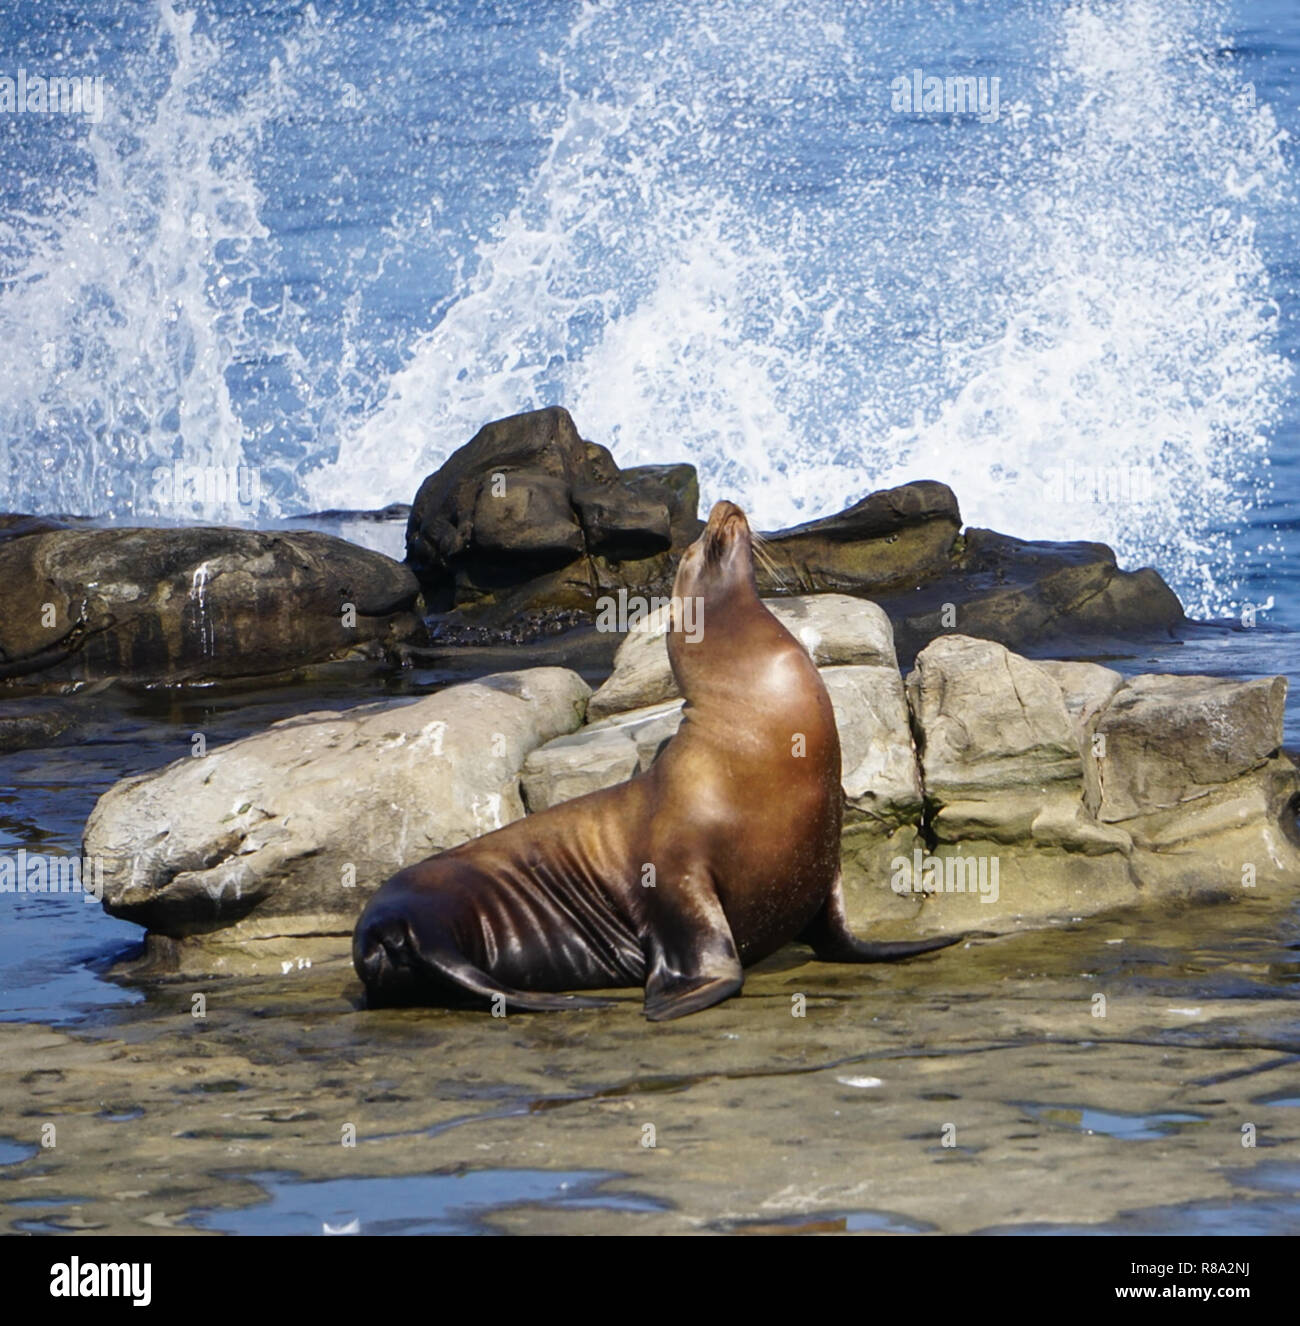 A Sea Lion on the rocks with the waves of the ocean splashing on the California Coast Stock Photo